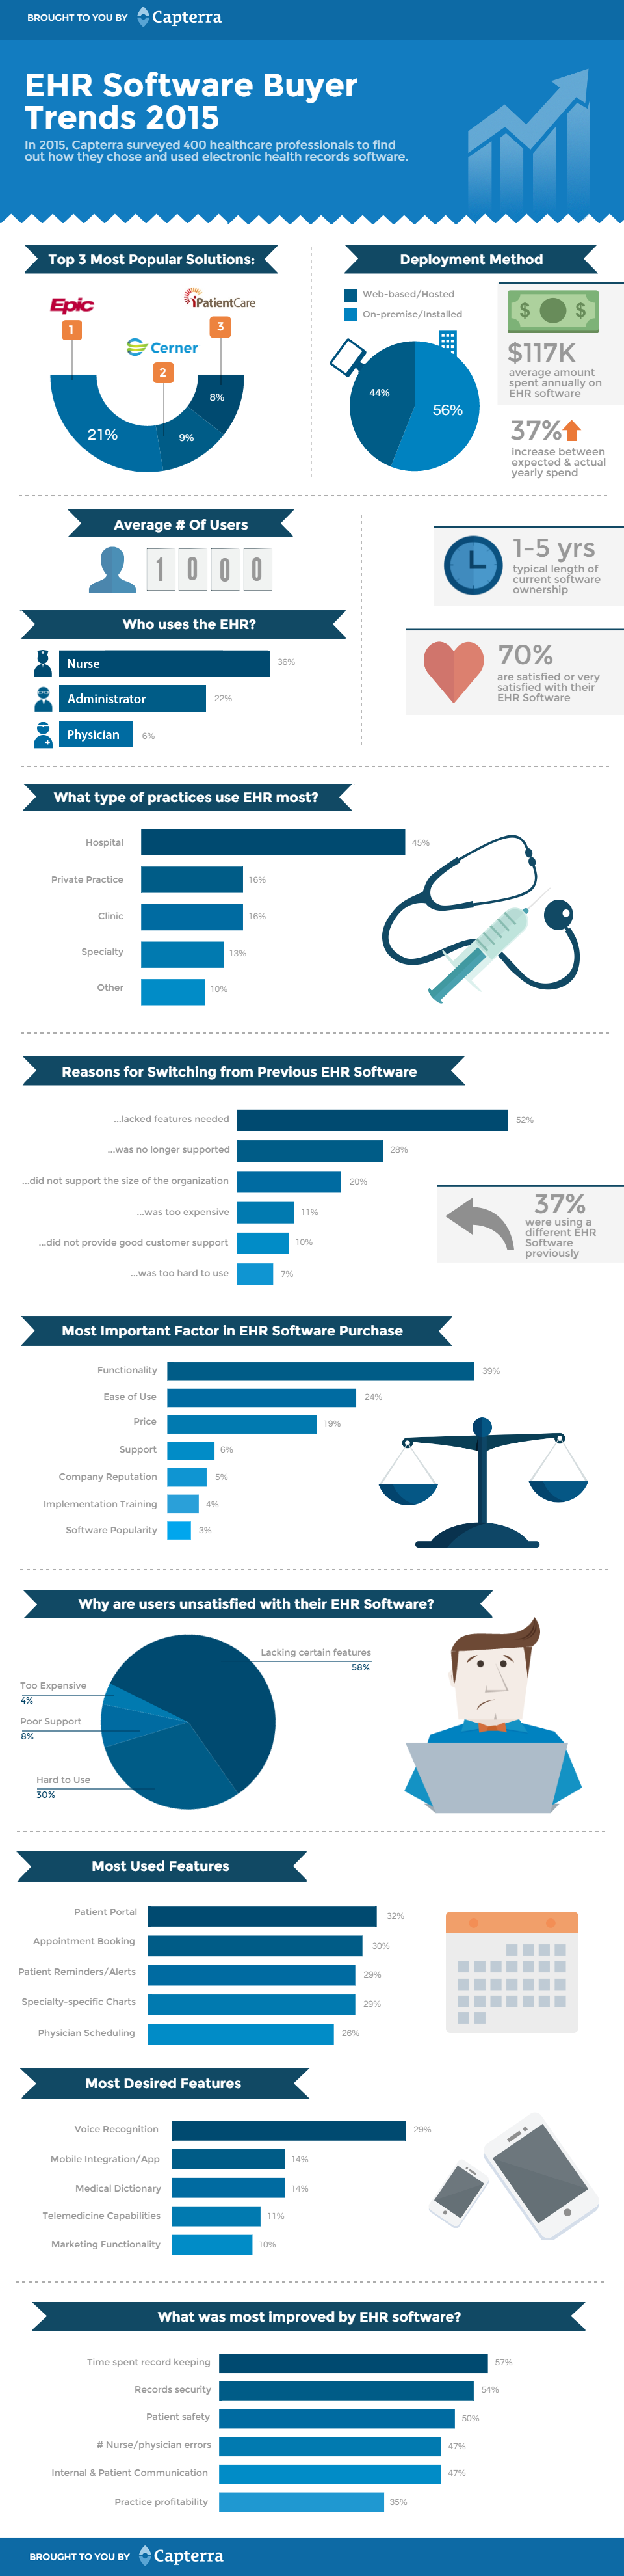 Ehr buyer trends infographic v001